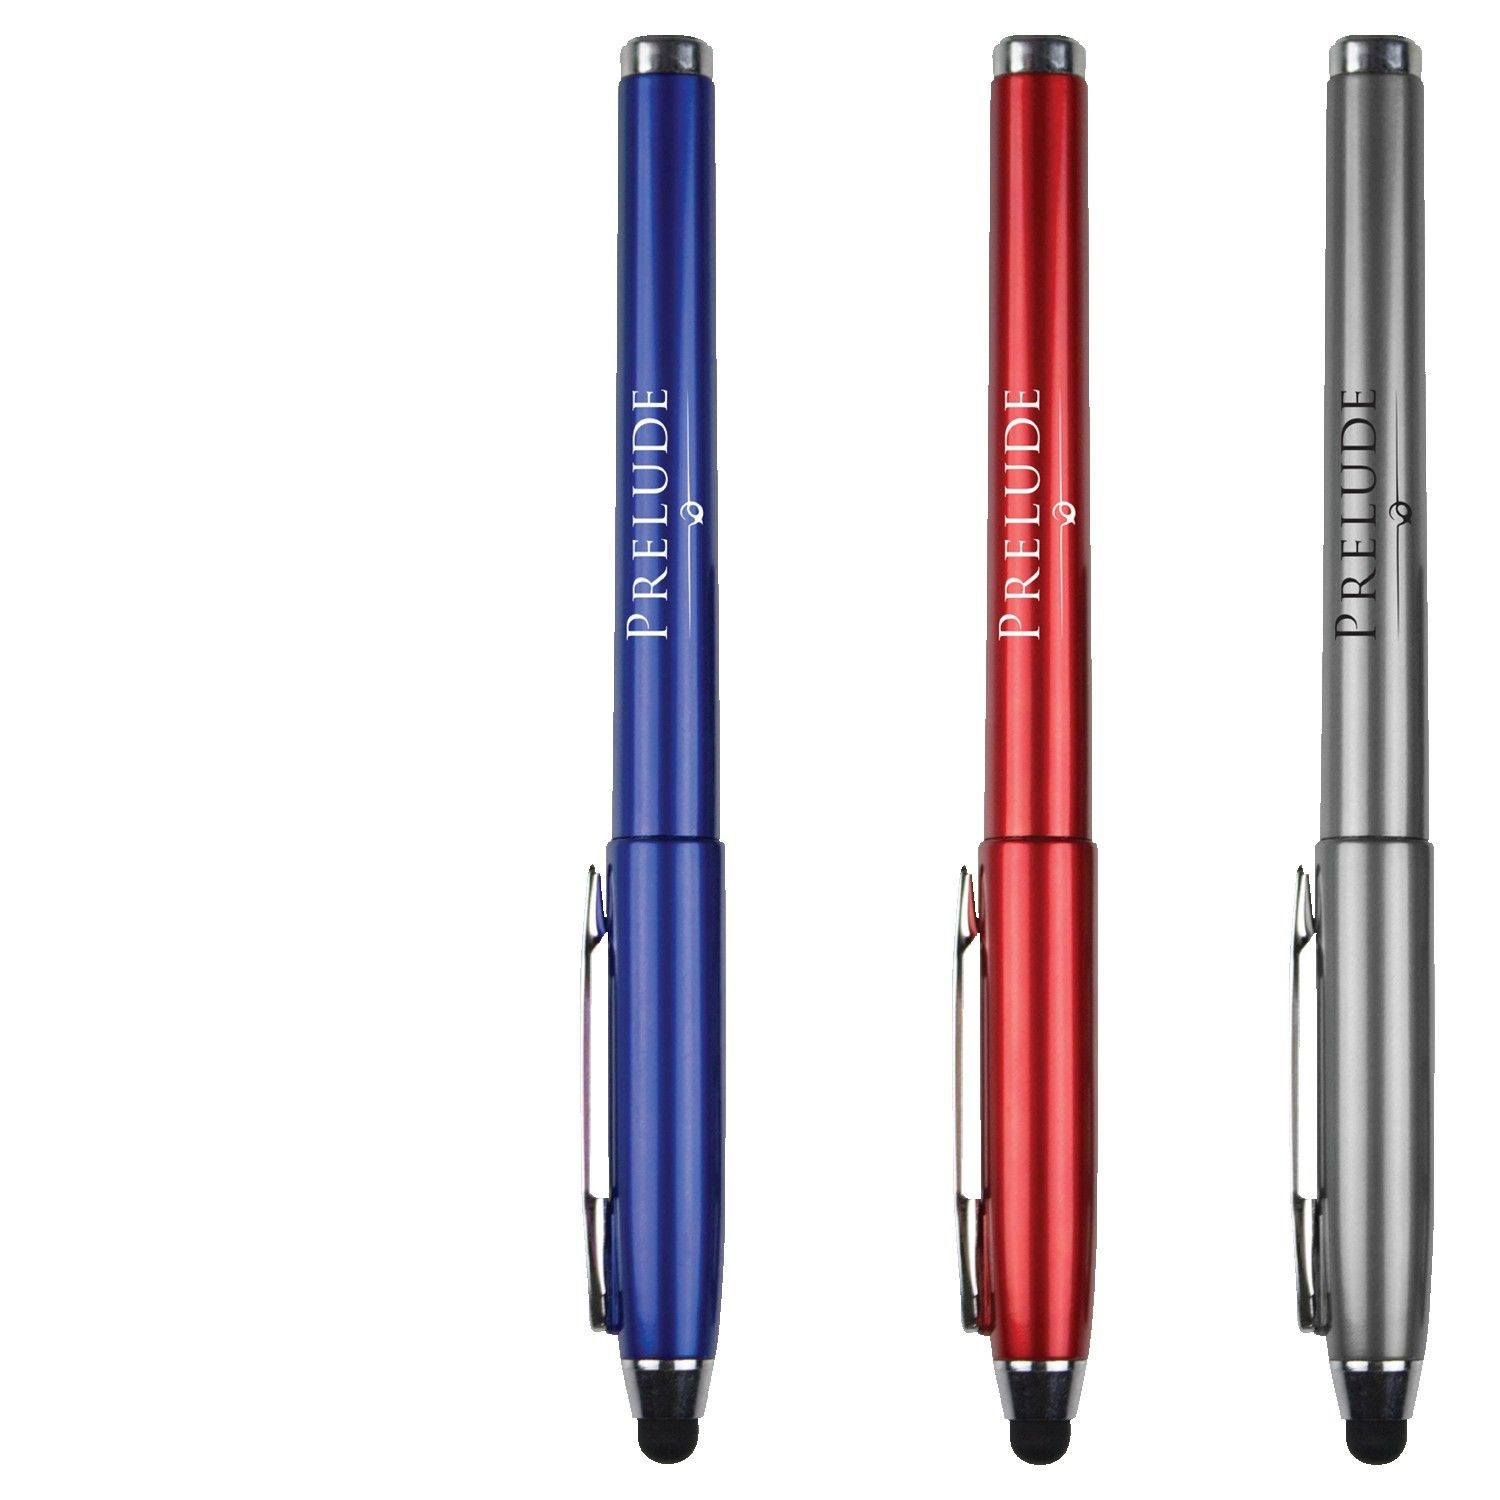 Ecbert Metallic Stylus Pen w/Blue Gel Ink and Cap